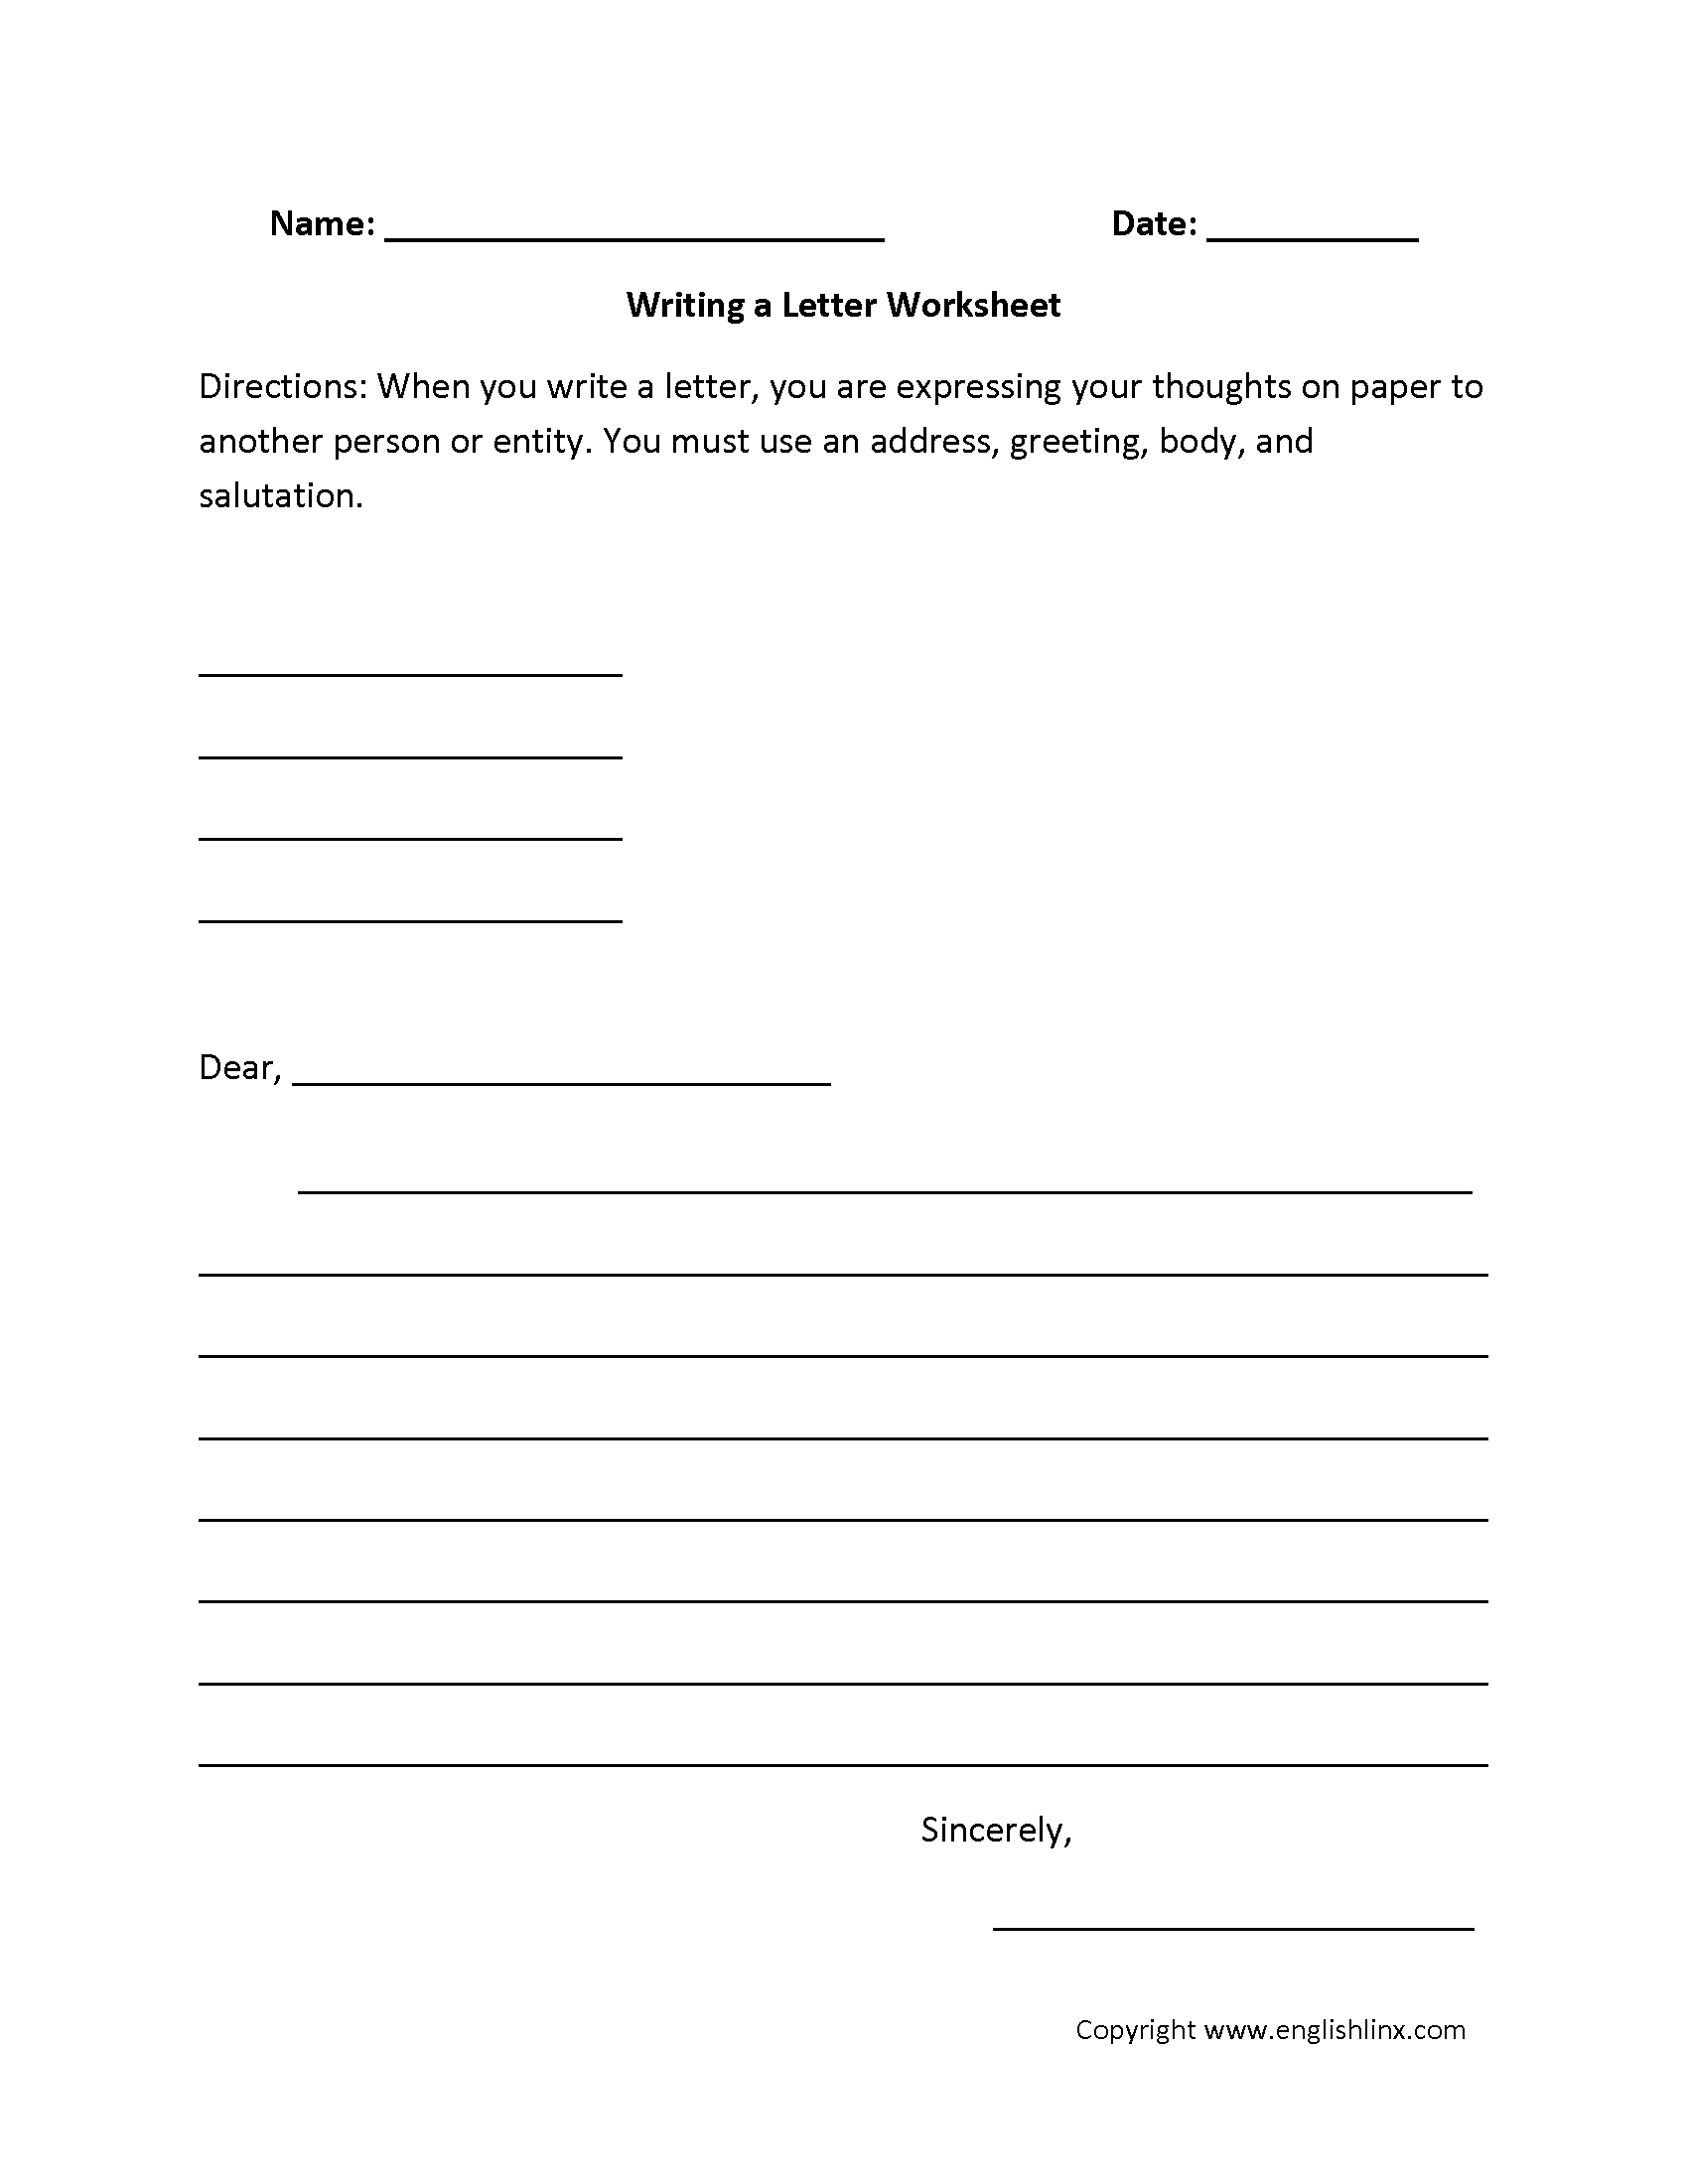 worksheet Third Grade Writing Worksheets englishlinx com writing worksheets a letter worksheet